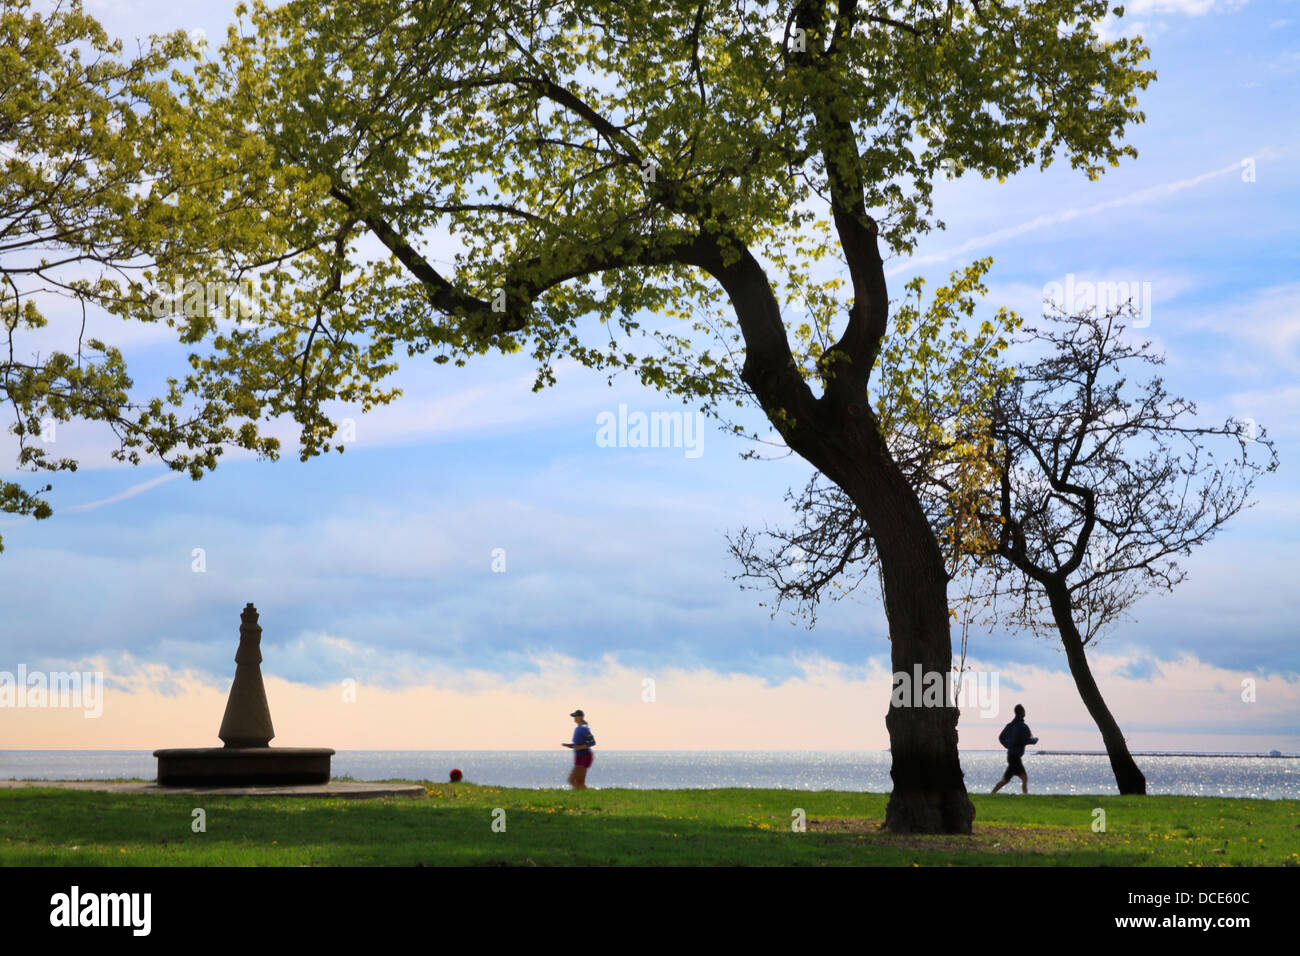 The Chicago Lakefront Trail And Joggers Framed By Foreground Trees With Lake Michigan In The Background, Chicago - Stock Image